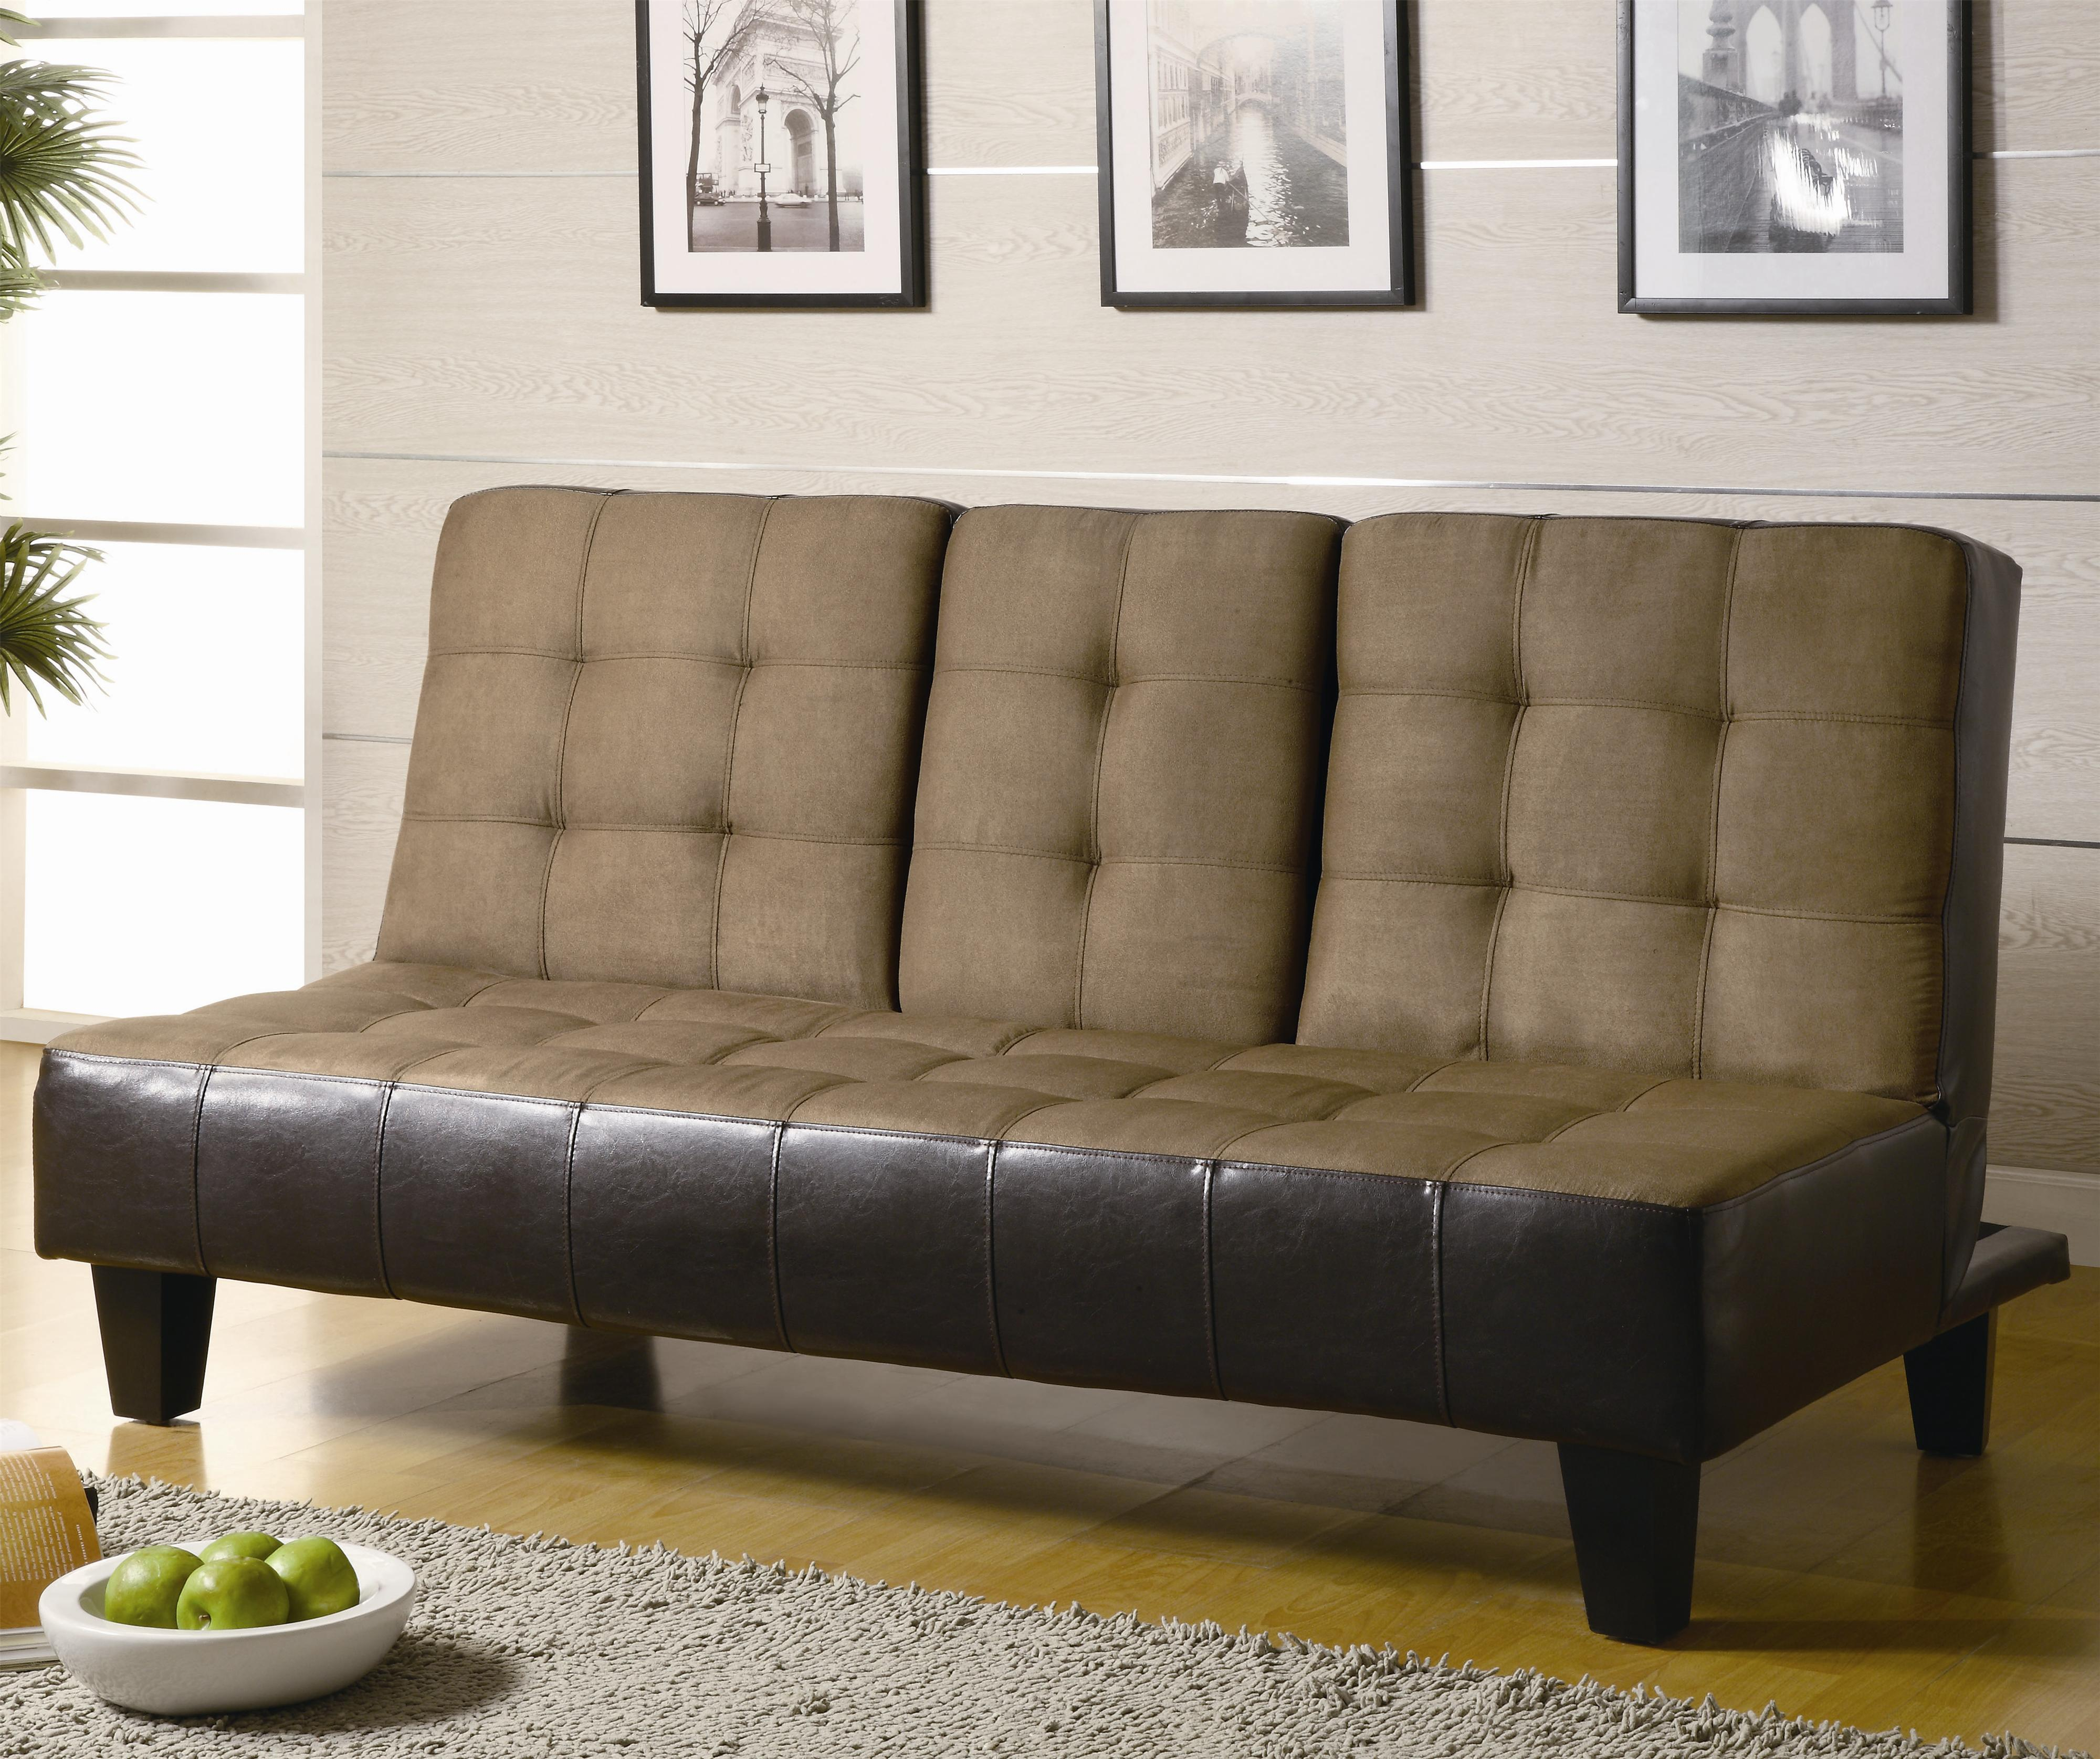 Coaster Sofa Beds and Futons -  Sofa Bed - Item Number: 300237